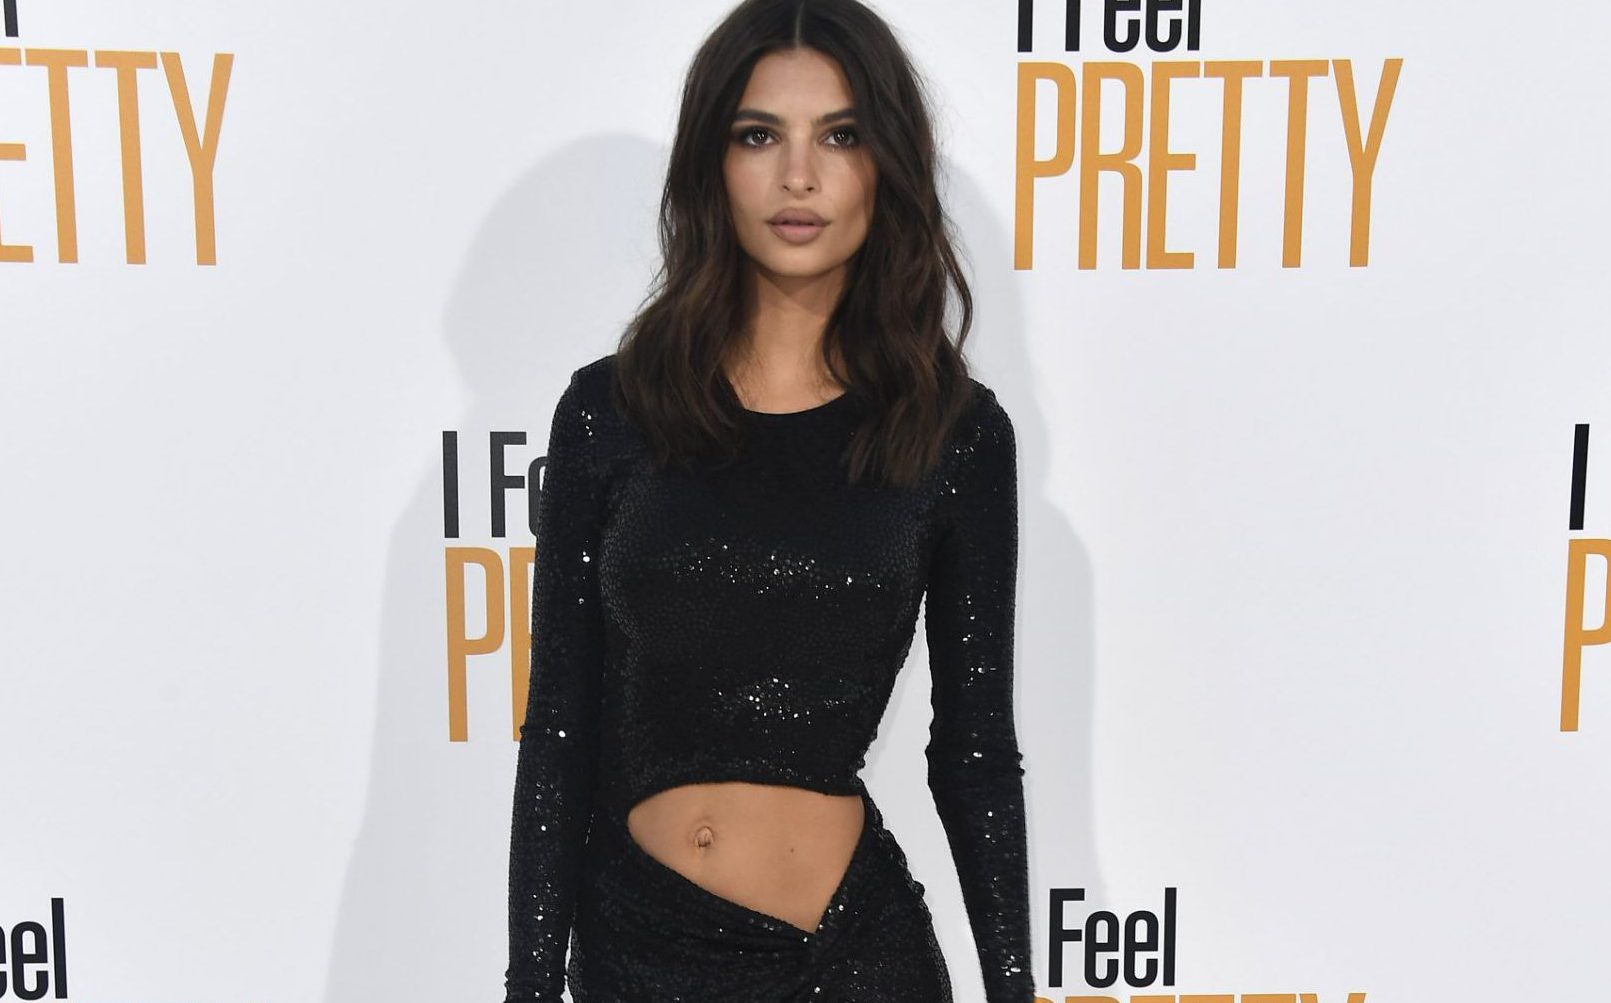 Emily Ratajkowski wants more acting roles to tell womens' stories and we're here for it